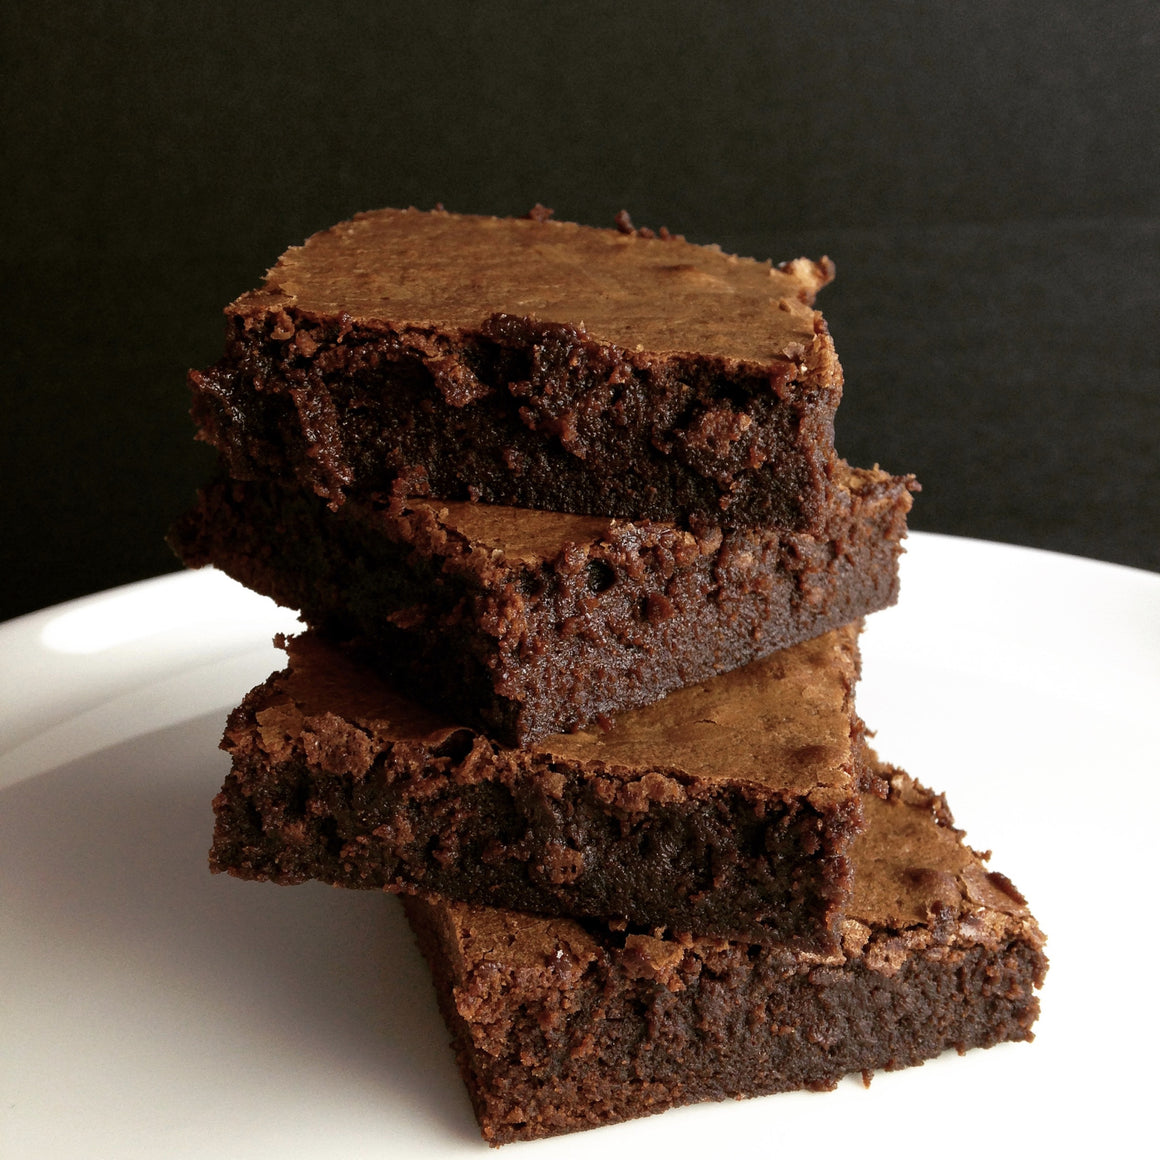 FUDGY CHOCOLATE BROWNIES